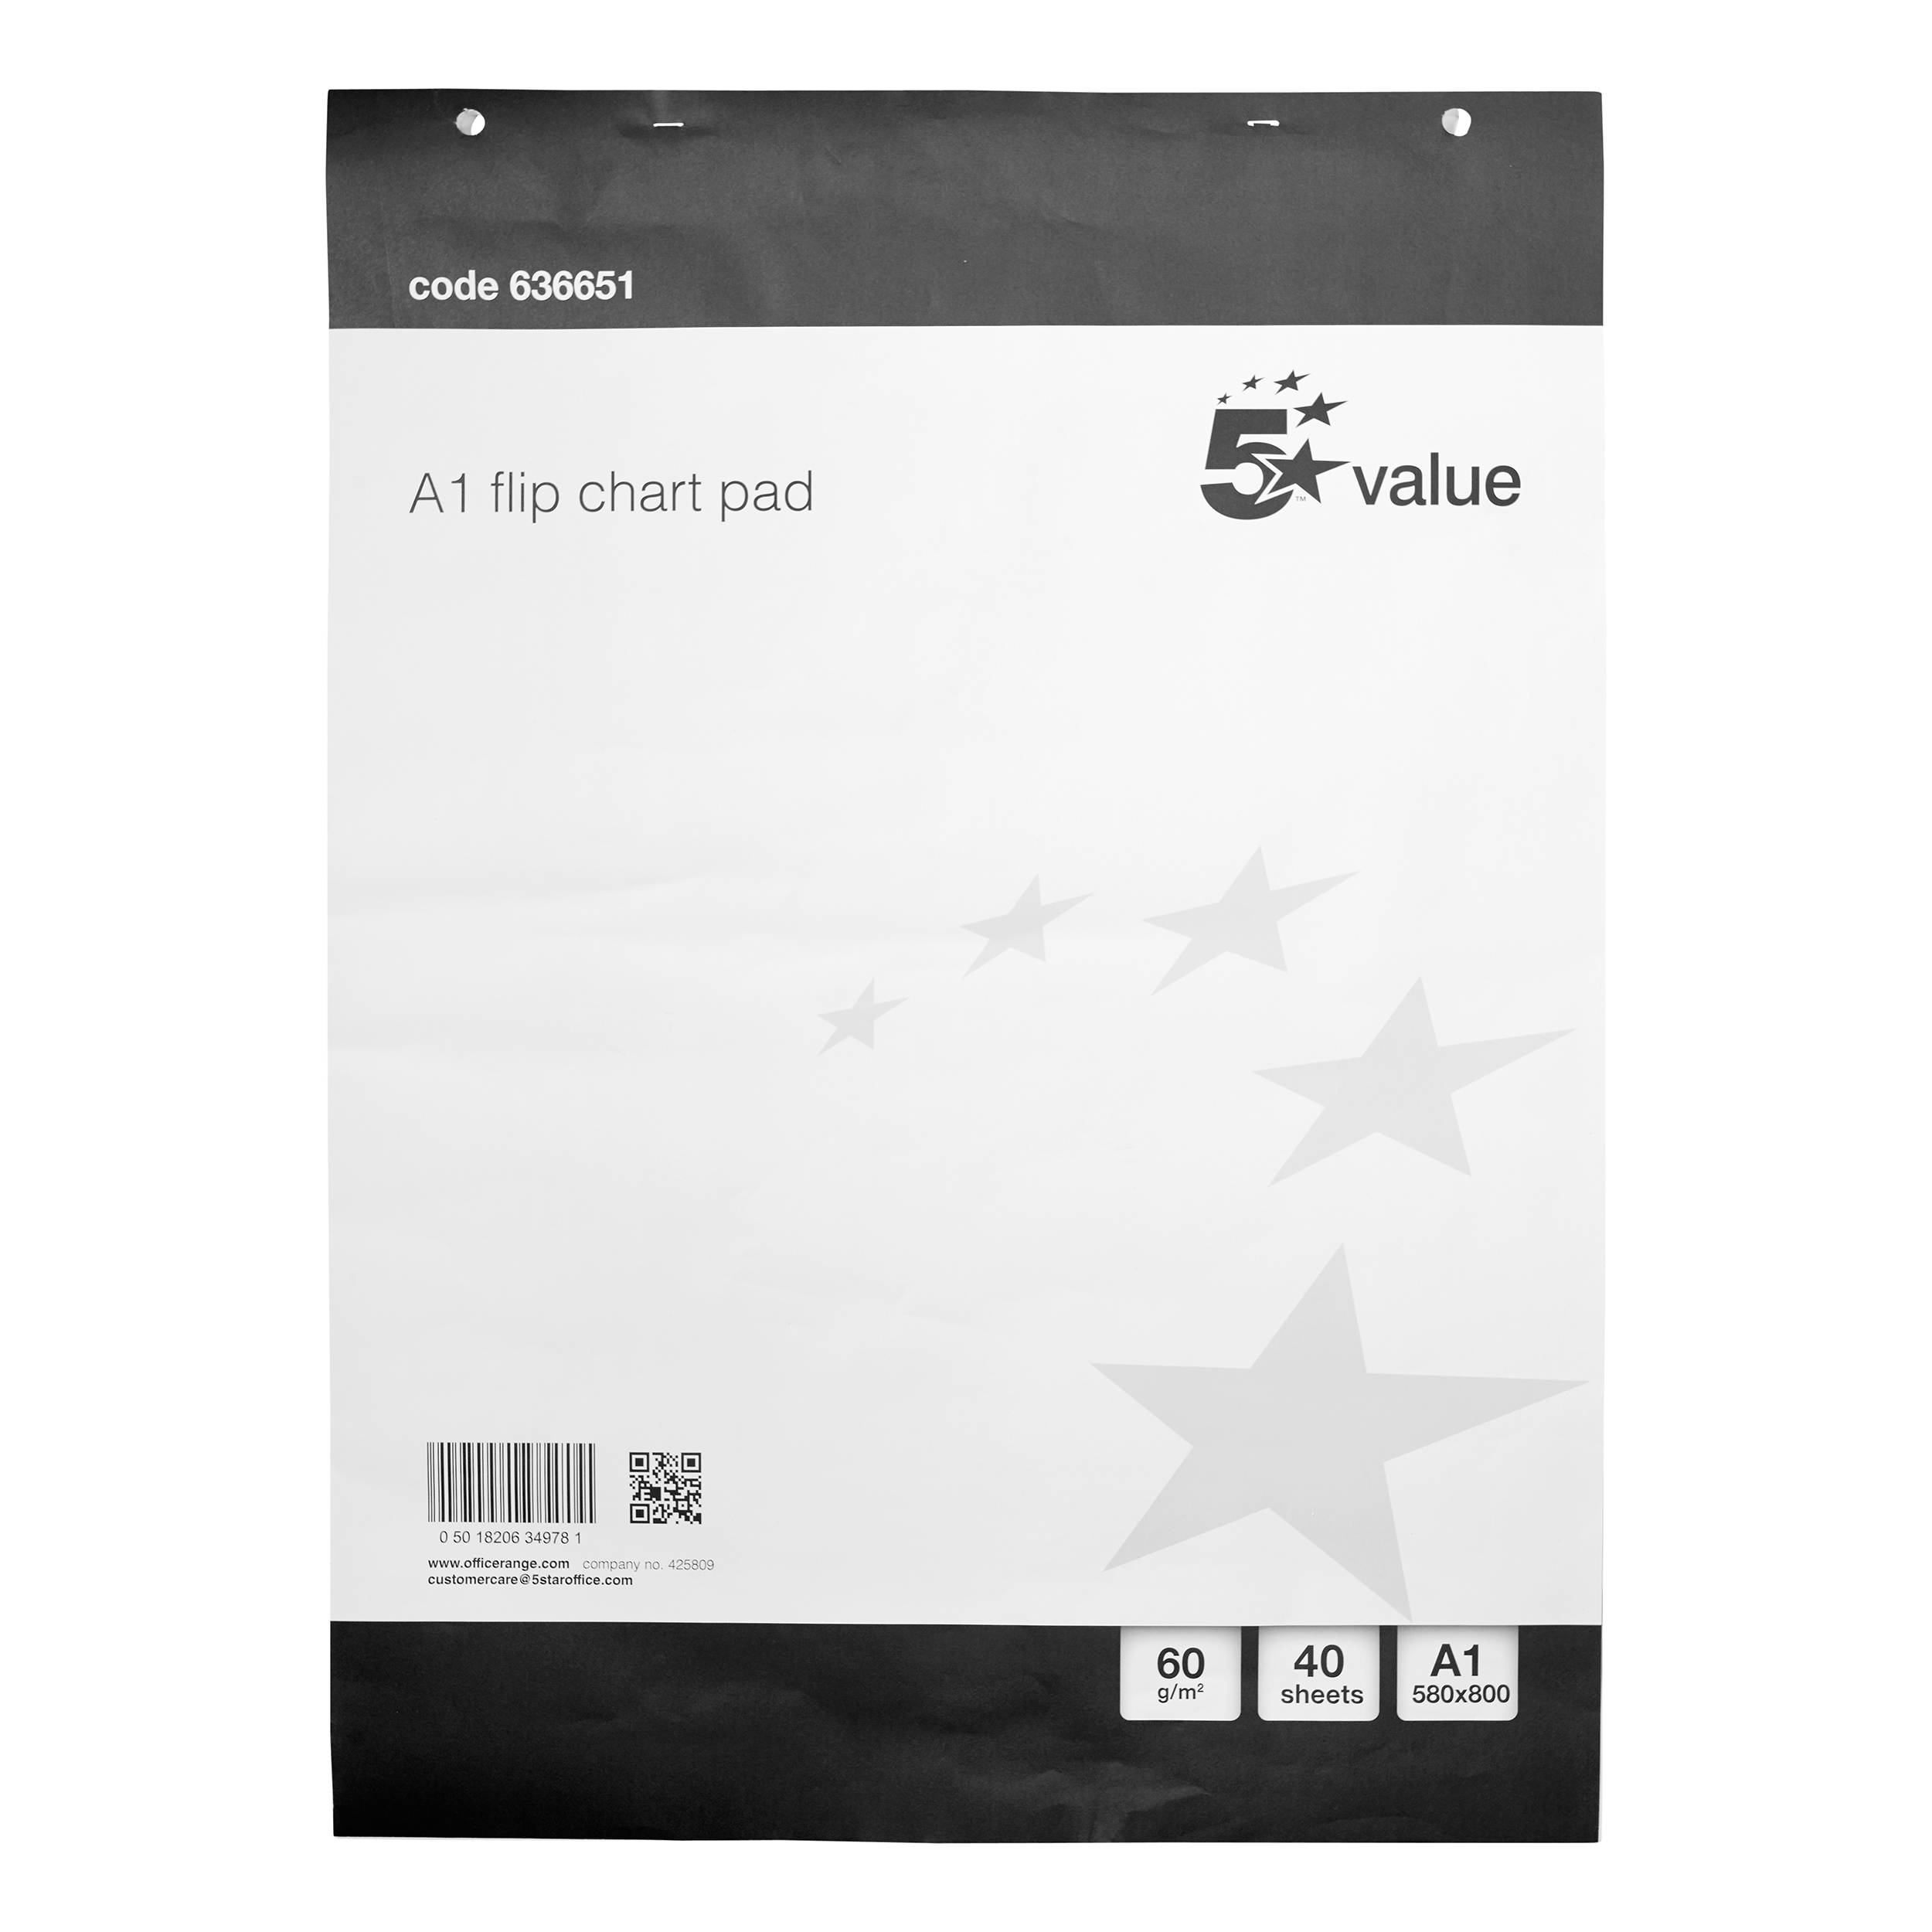 Flip chart 5 Star Value Flipchart Pad Perforated 40 Sheets A1 Pack 5